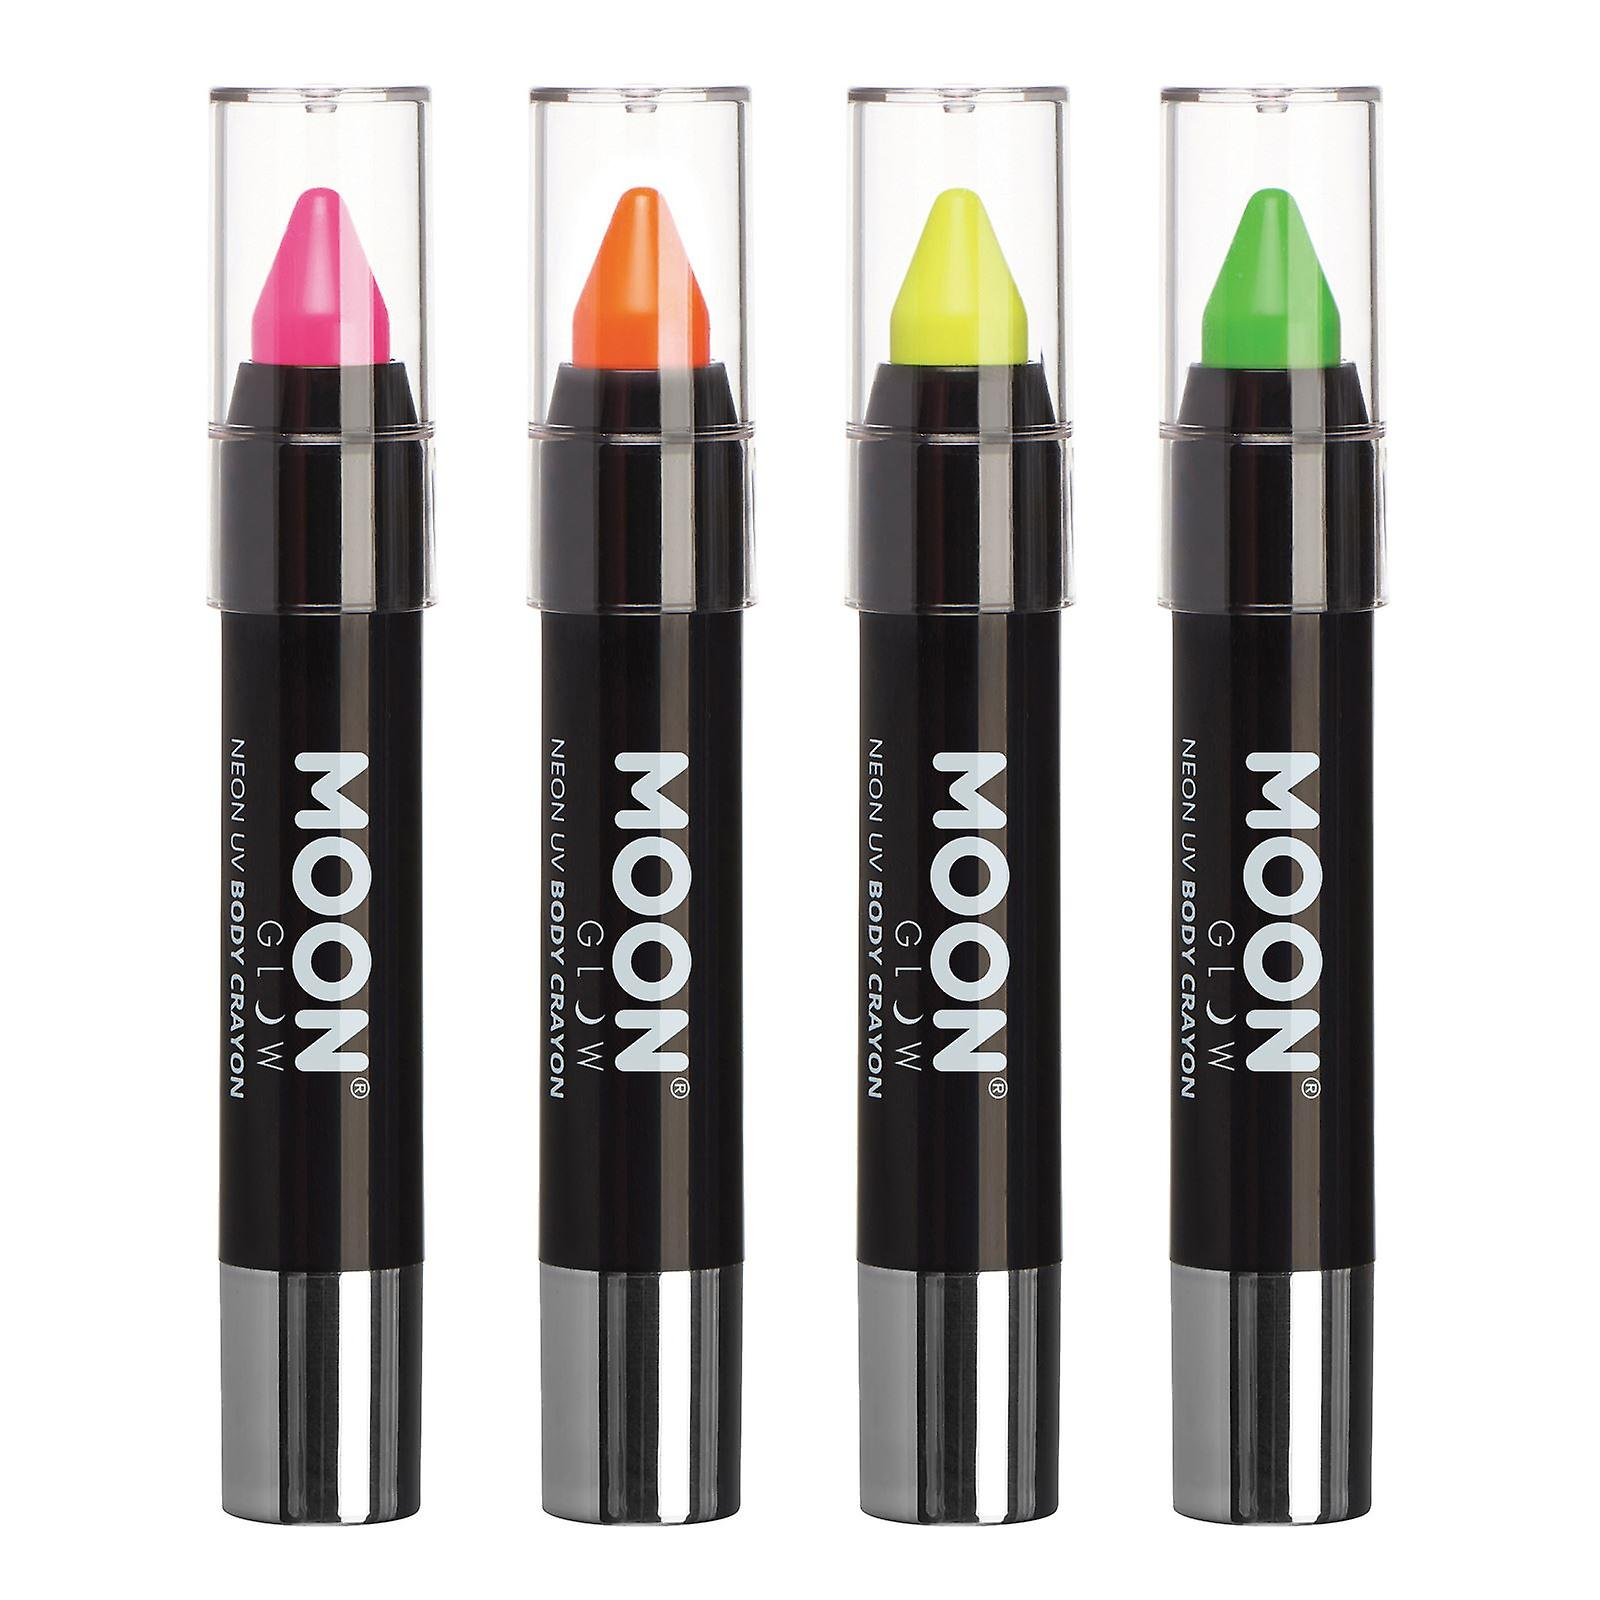 Moon Glow - Neon UV Face Paint Stick / Body Crayon makeup for the Face & Body - Pastel set of 4 colours - Glows brightly under UV lighting - Pink, Yellow, Orange, Green